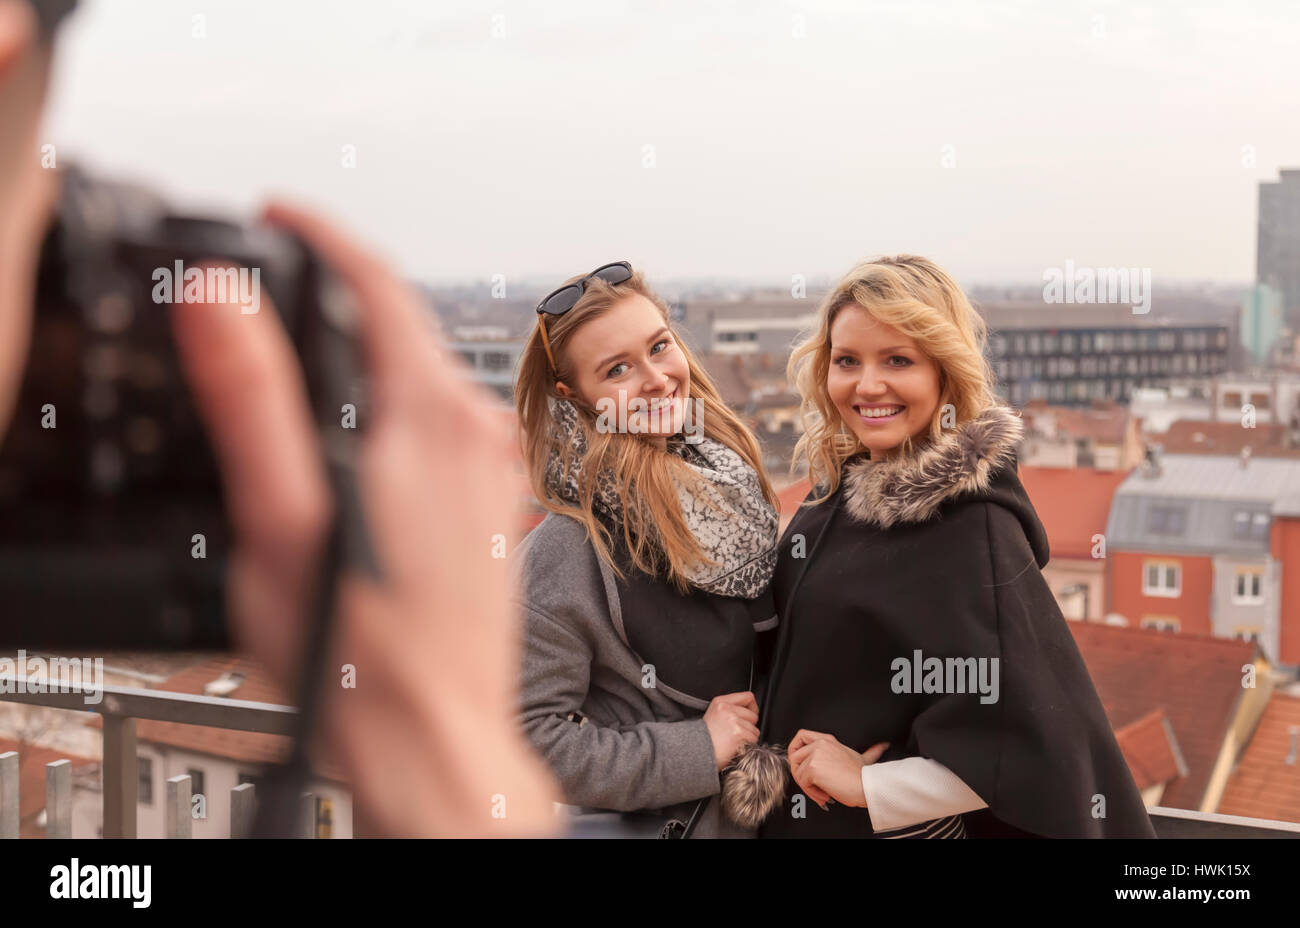 photographer takes pictures of two women in front of city scape. both models are smiling at man taking pictures - Stock Image